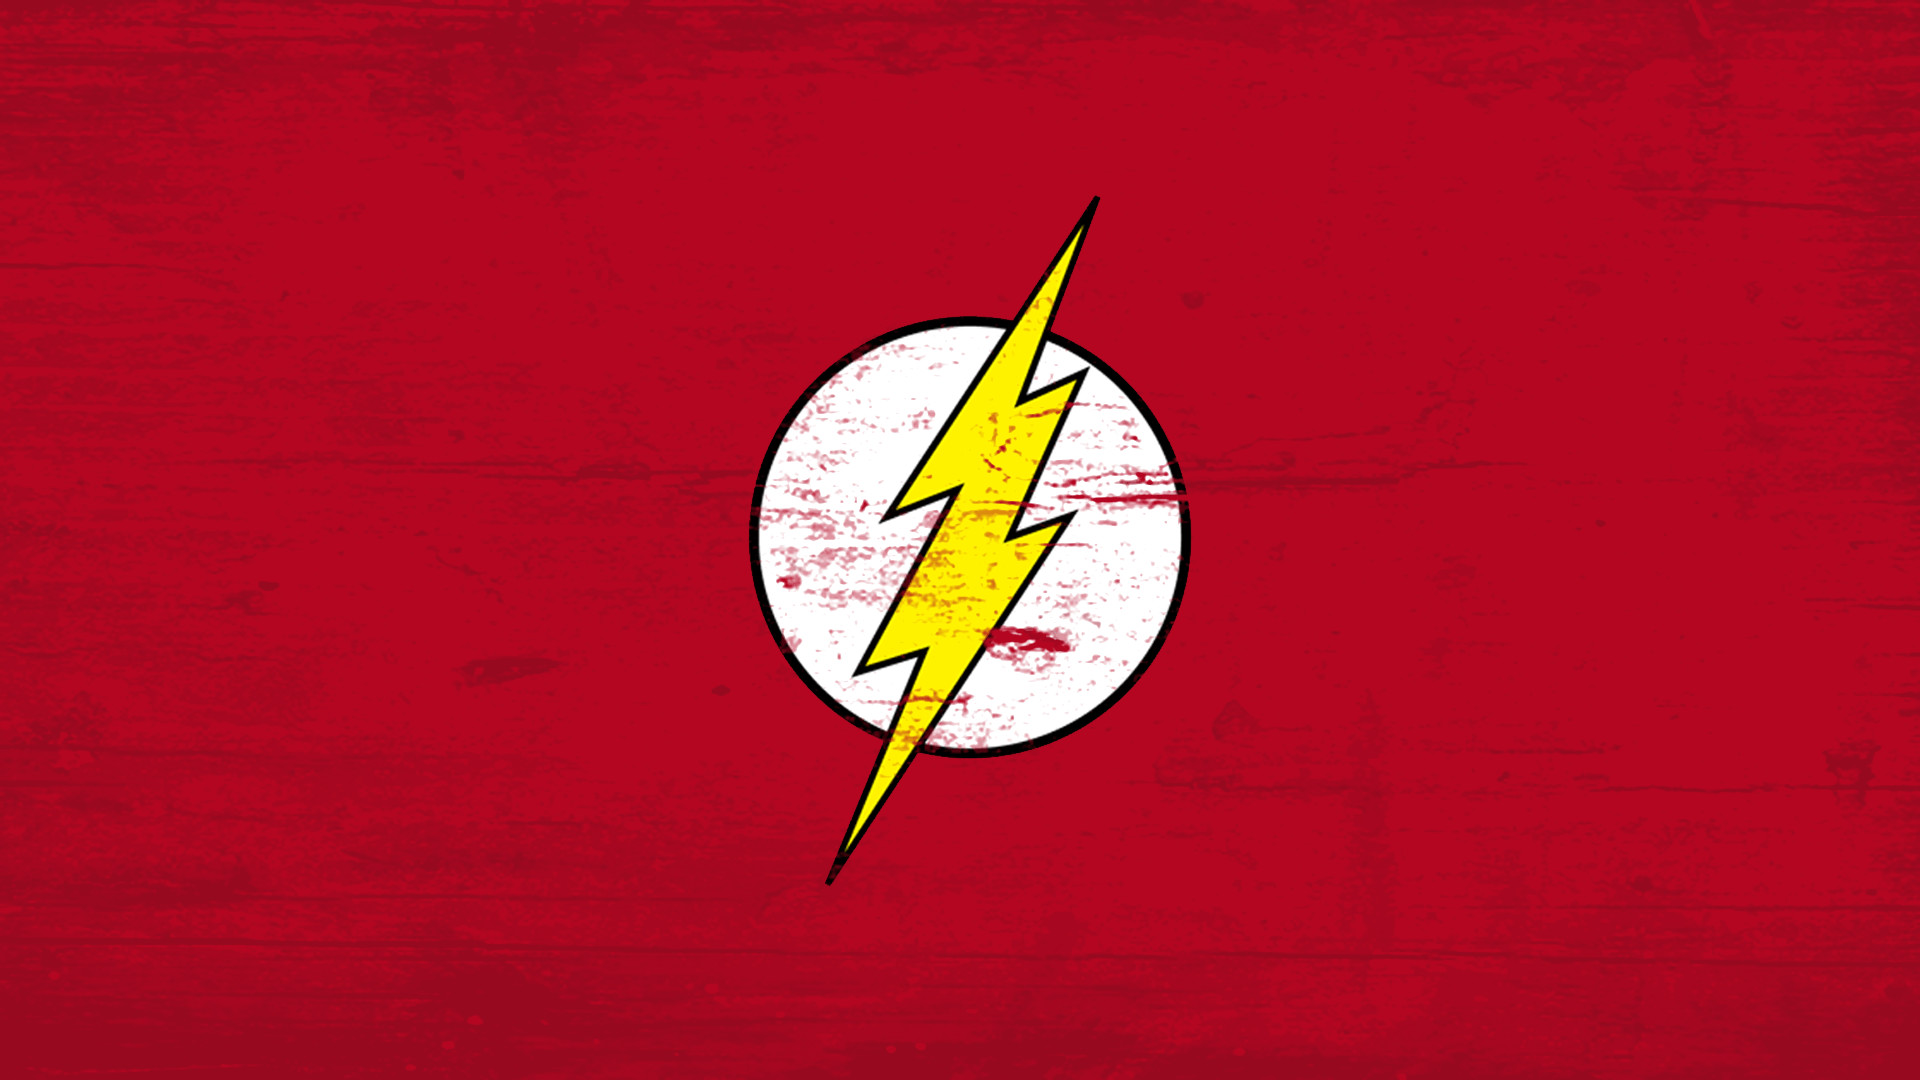 … Best Abstract Wallpapers The Flash Logo Wallpaper in The Flash HD  Wallpaper WallpaperSafari Wallpaper For Mobile